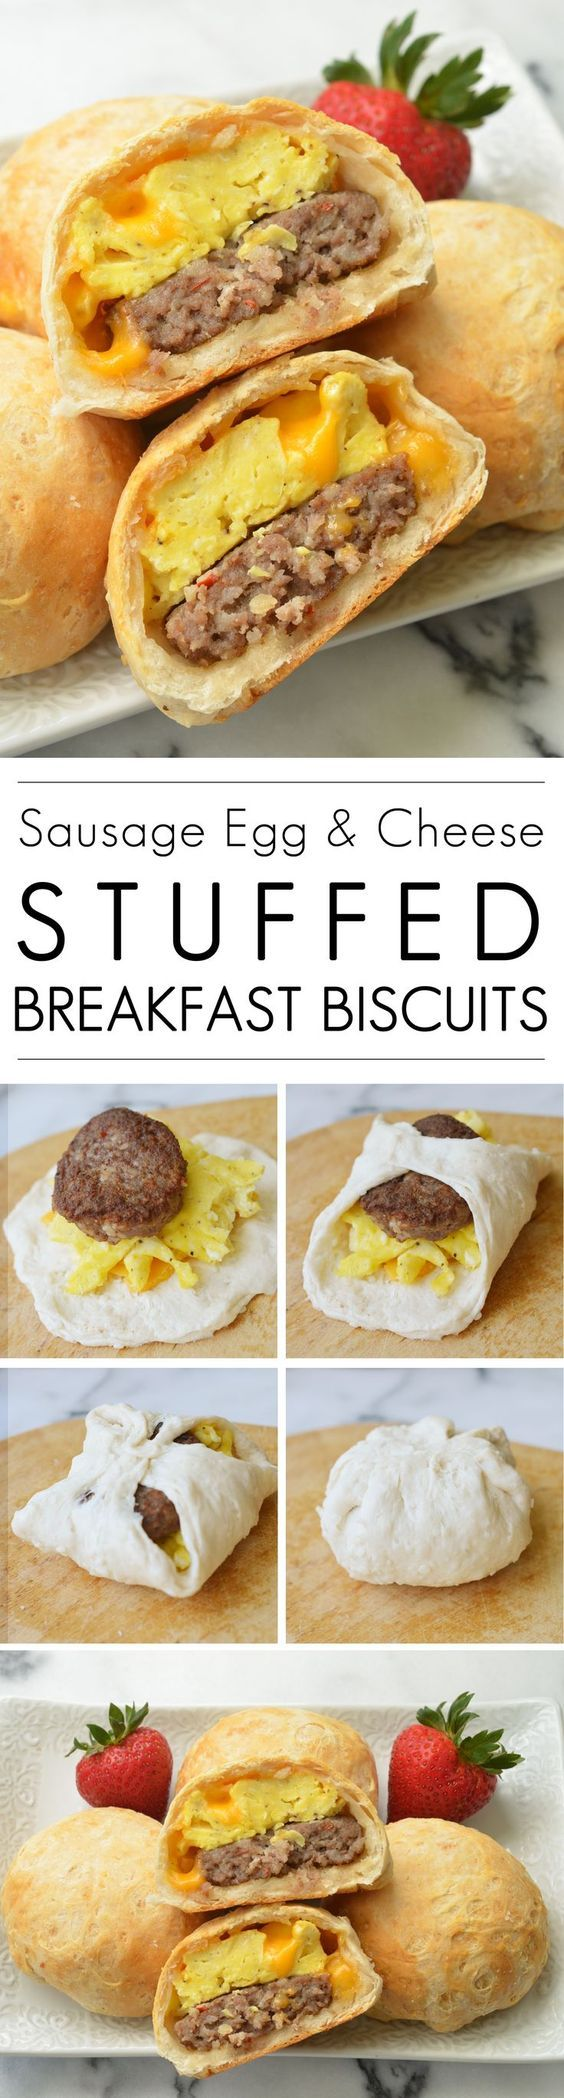 Sausage Egg & Cheese Stuffed Breakfast Biscuits